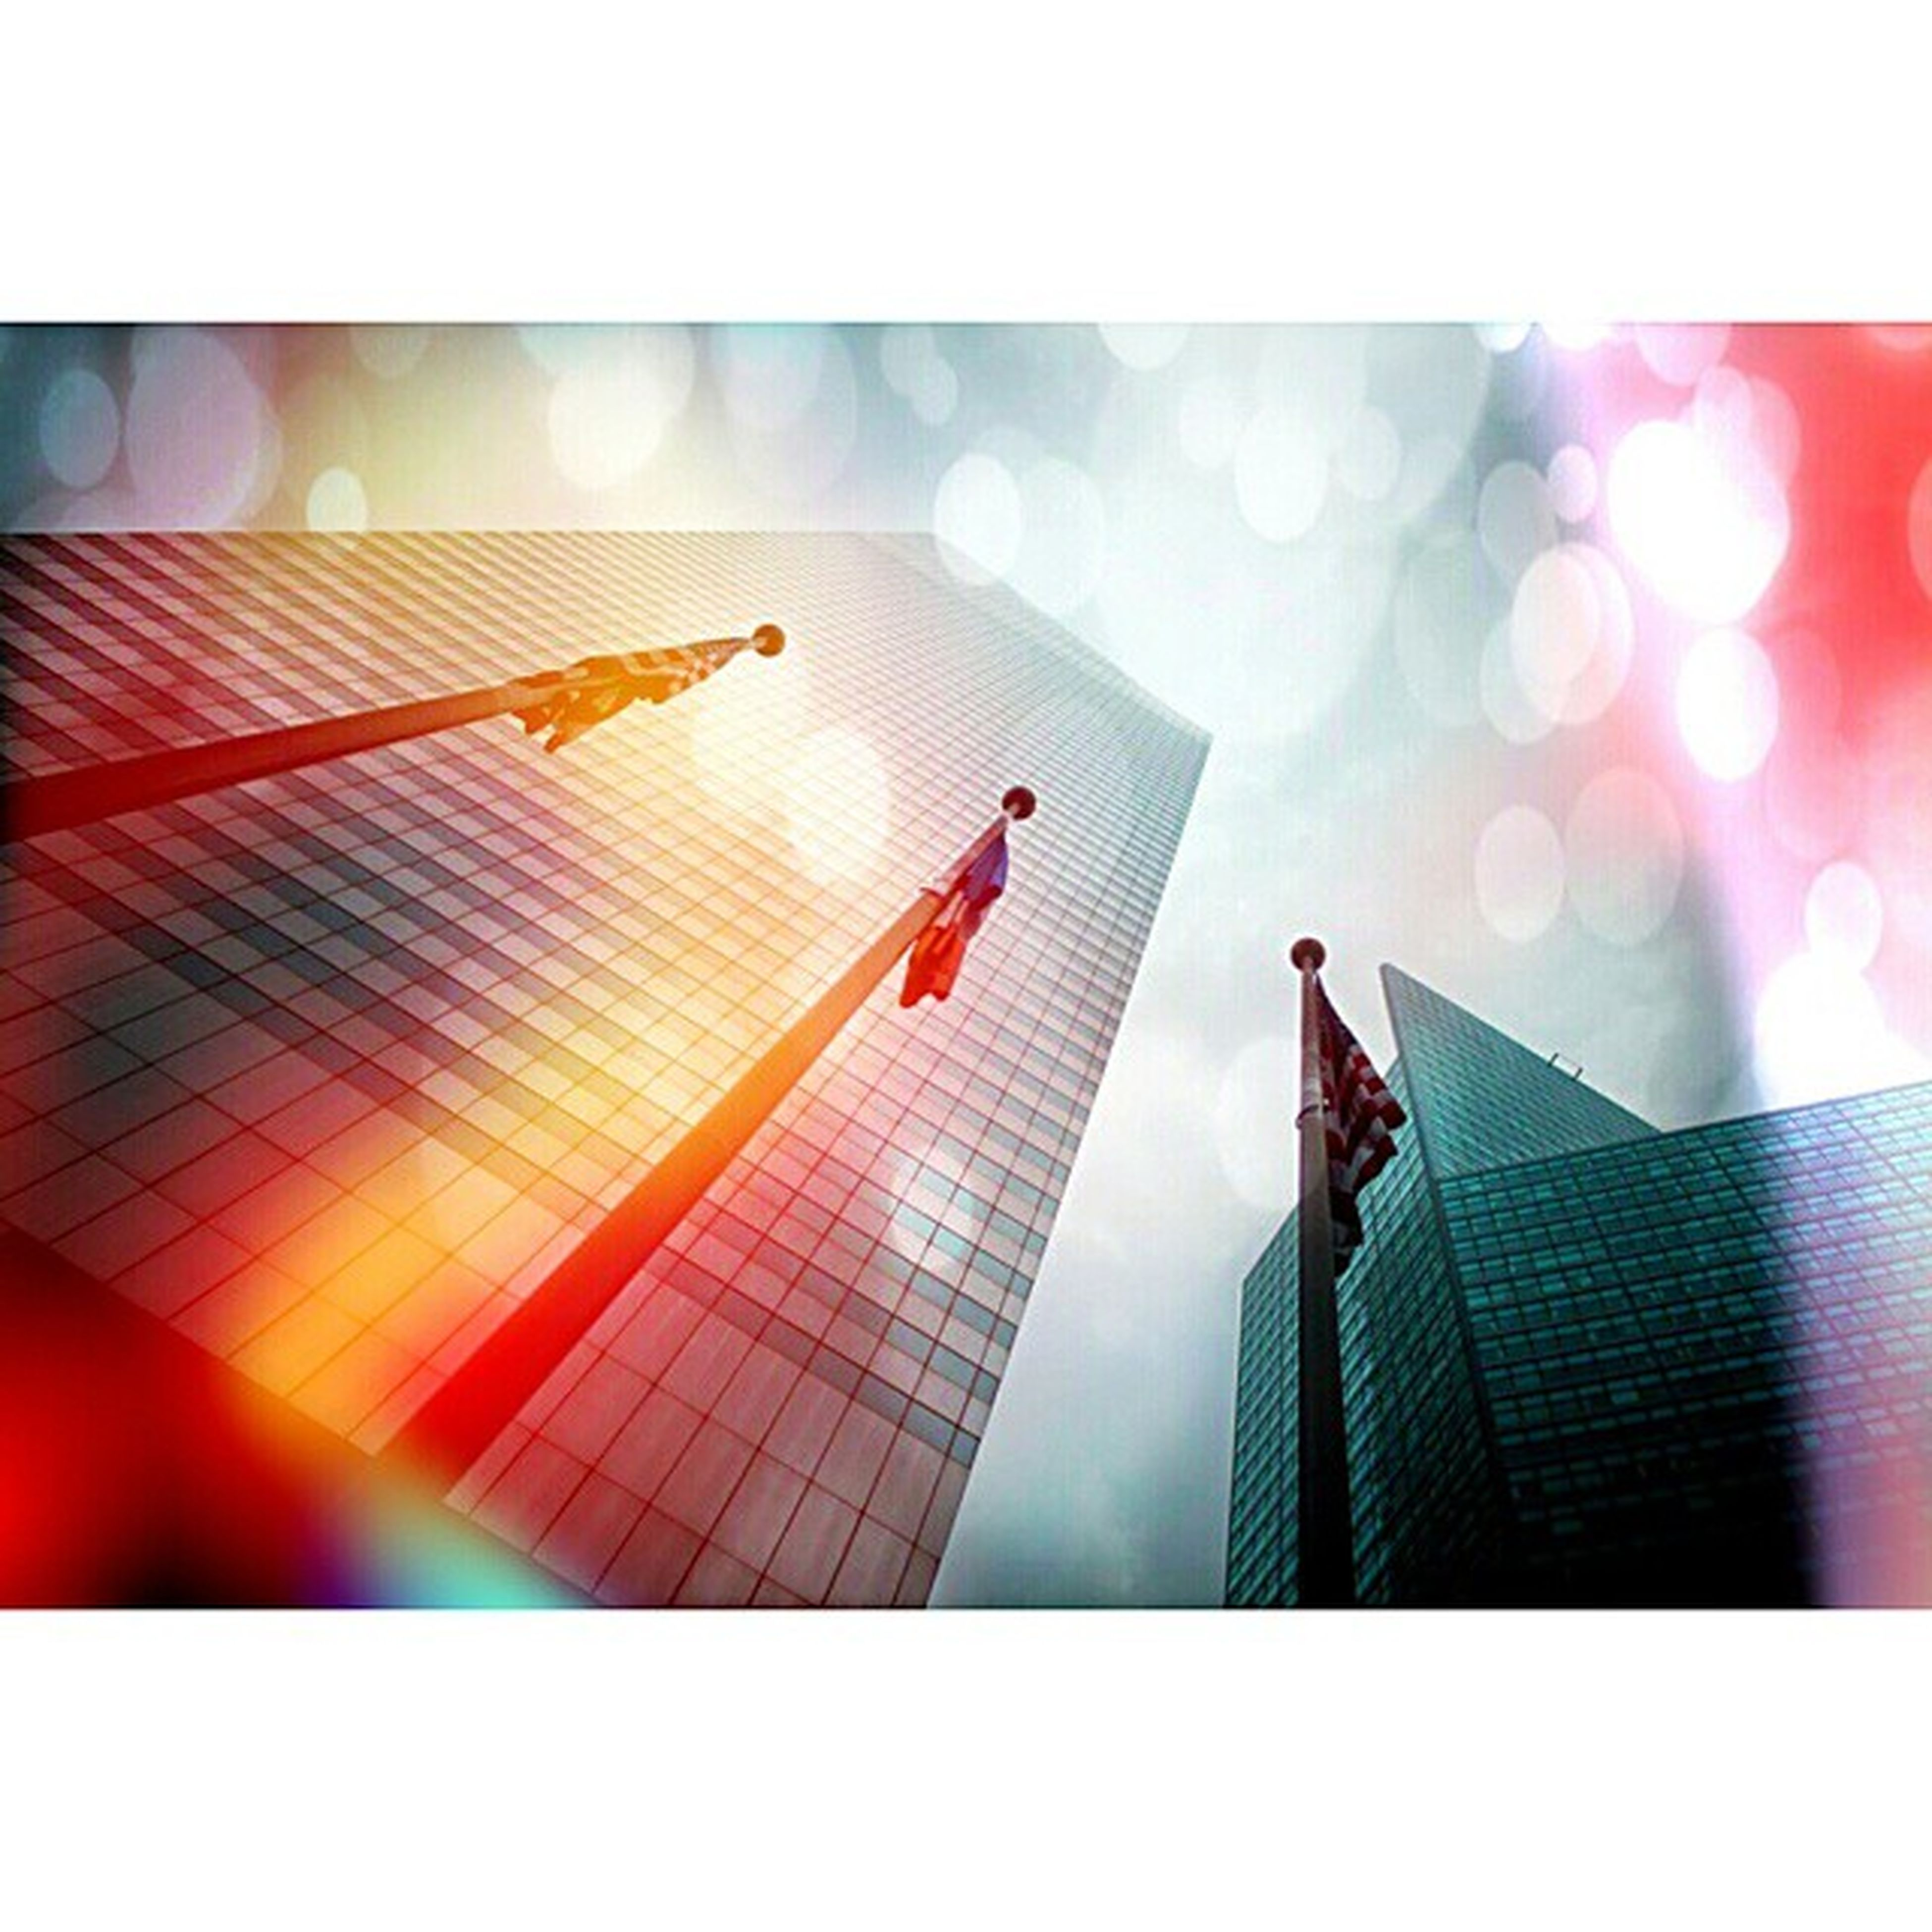 transfer print, building exterior, built structure, auto post production filter, architecture, city, modern, skyscraper, reflection, office building, low angle view, sky, sunlight, glass - material, outdoors, no people, development, sun, construction site, crane - construction machinery